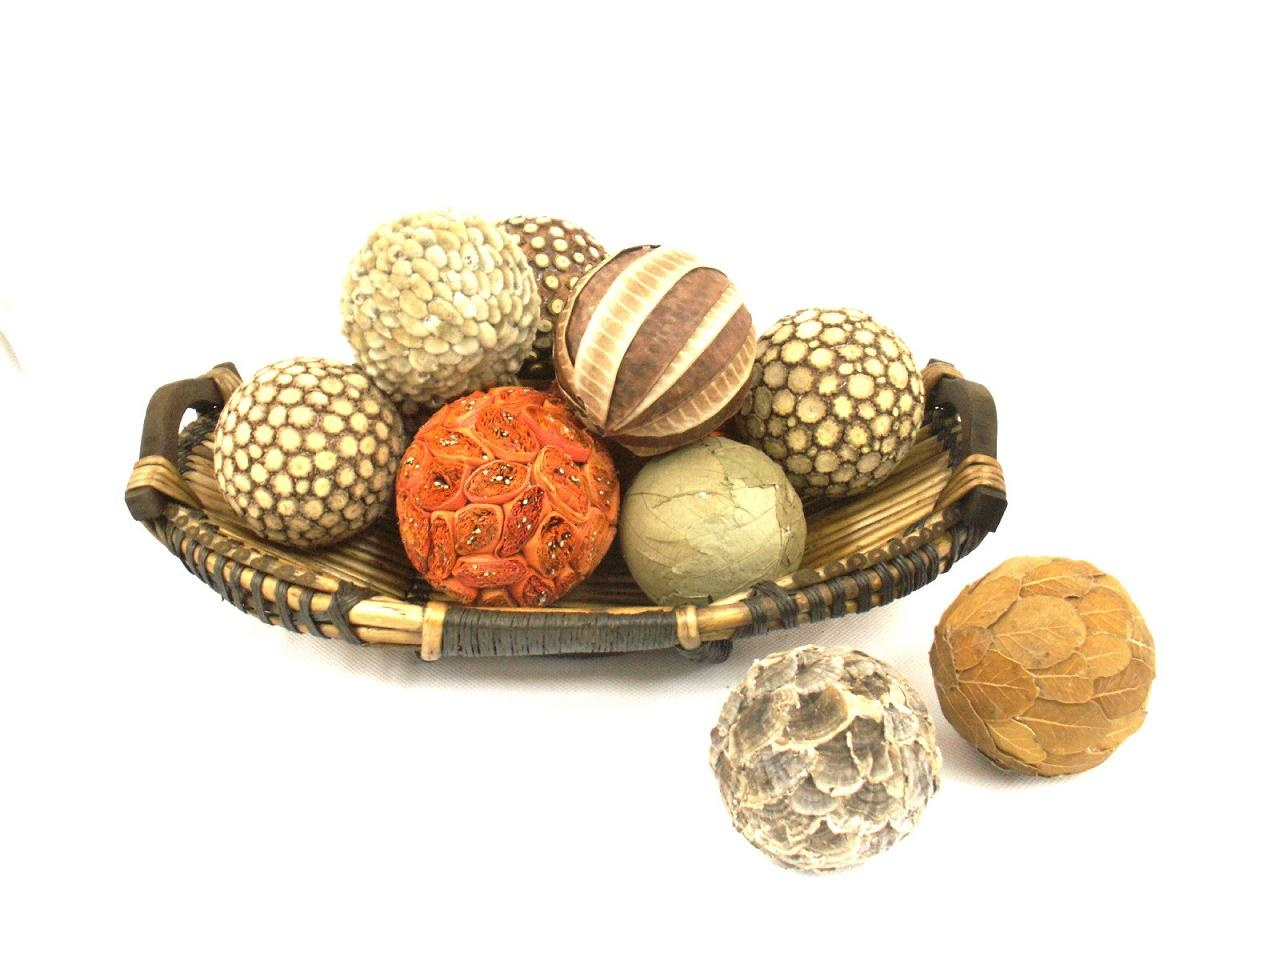 Natural decorative balls natural materials for Decorative items for home with waste material